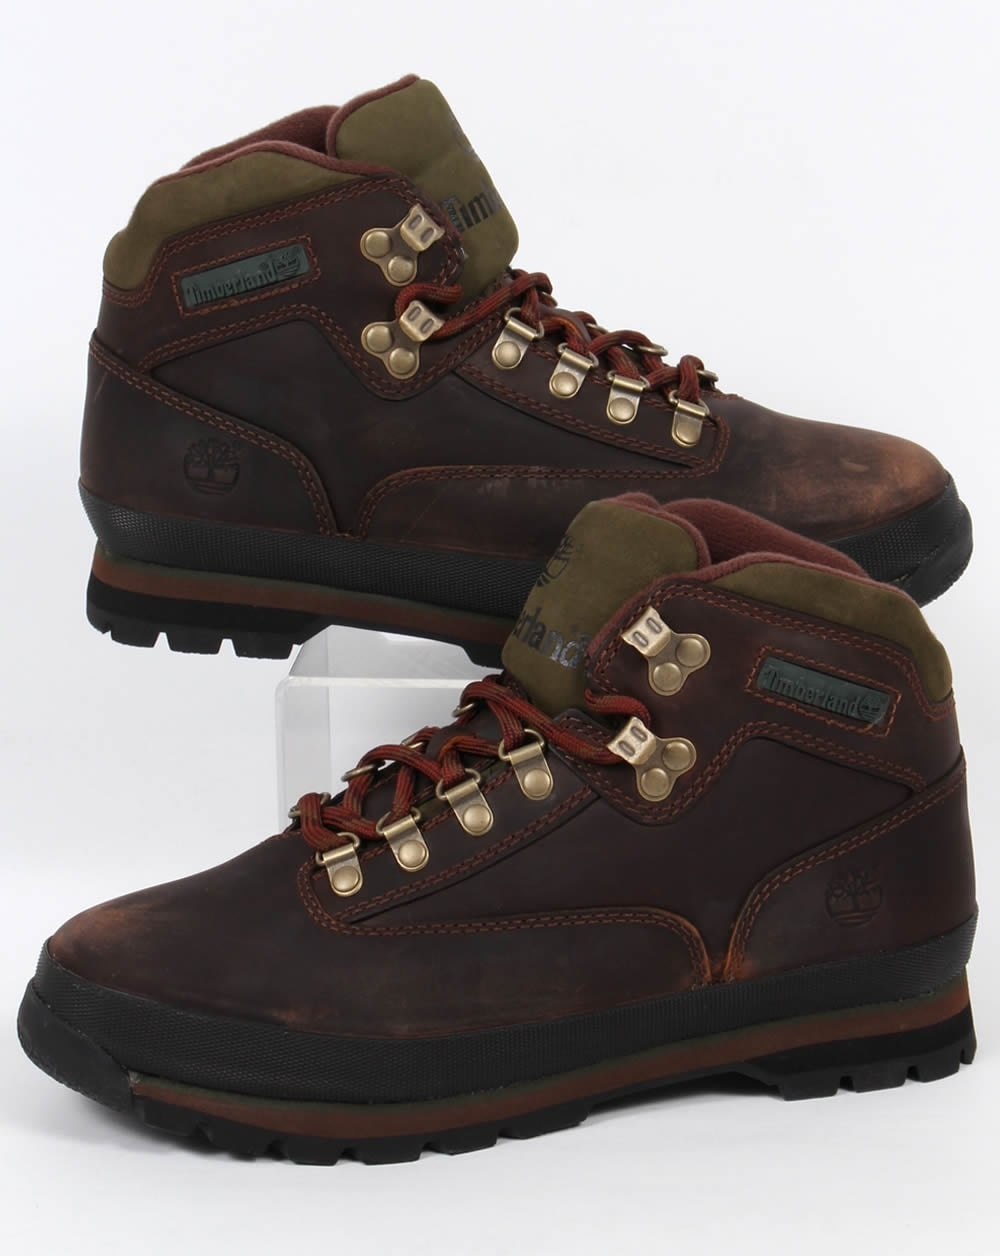 16b85f9225e Timberland Euro Leather Hiker Boots Brown Smooth